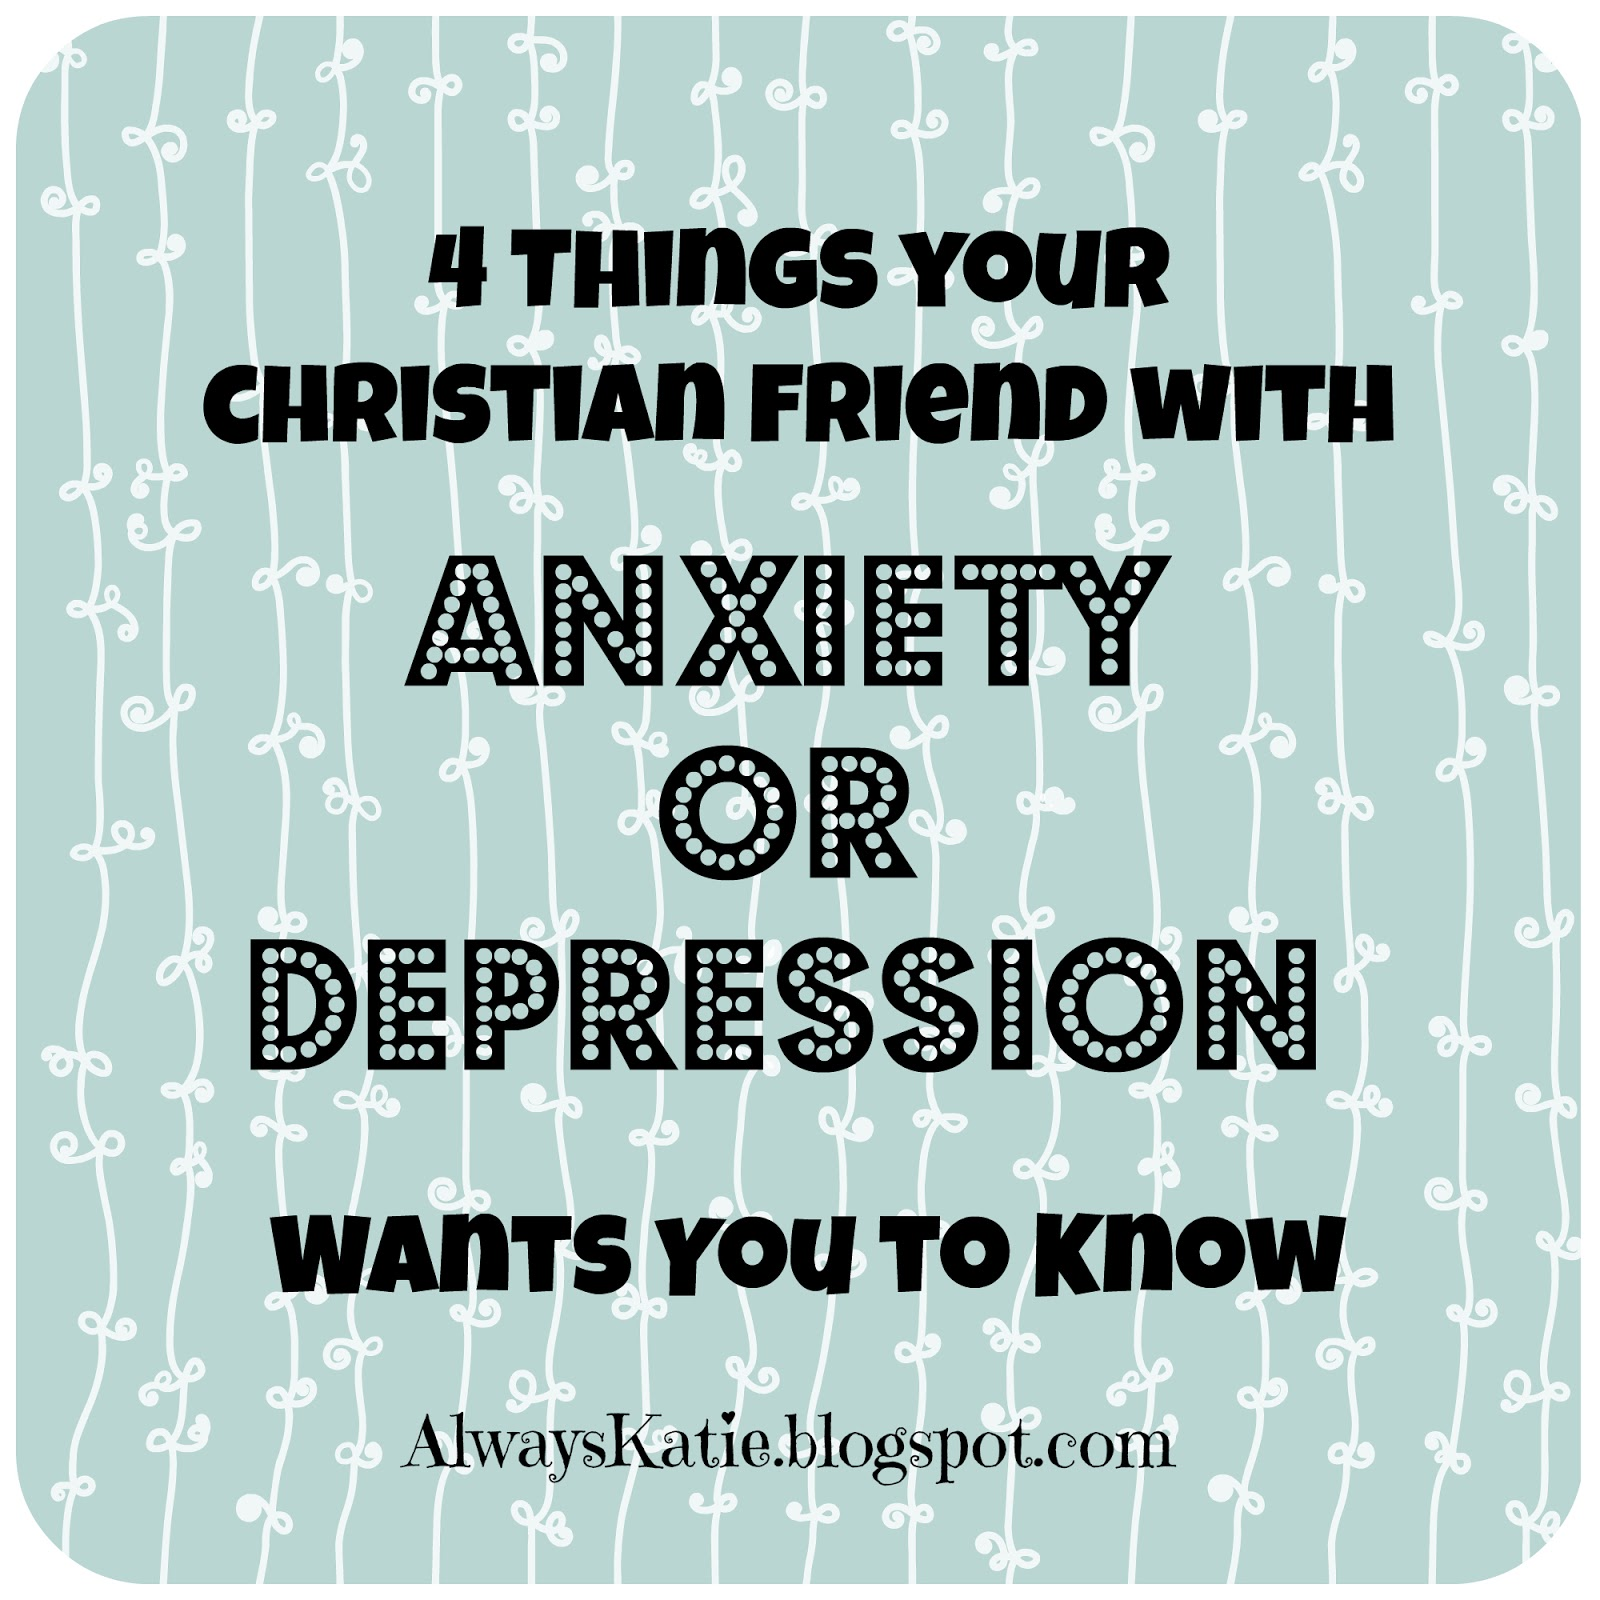 Anxiety And Depression Quotes Always Katie 4 Things Your Christian Friend With Depression Or